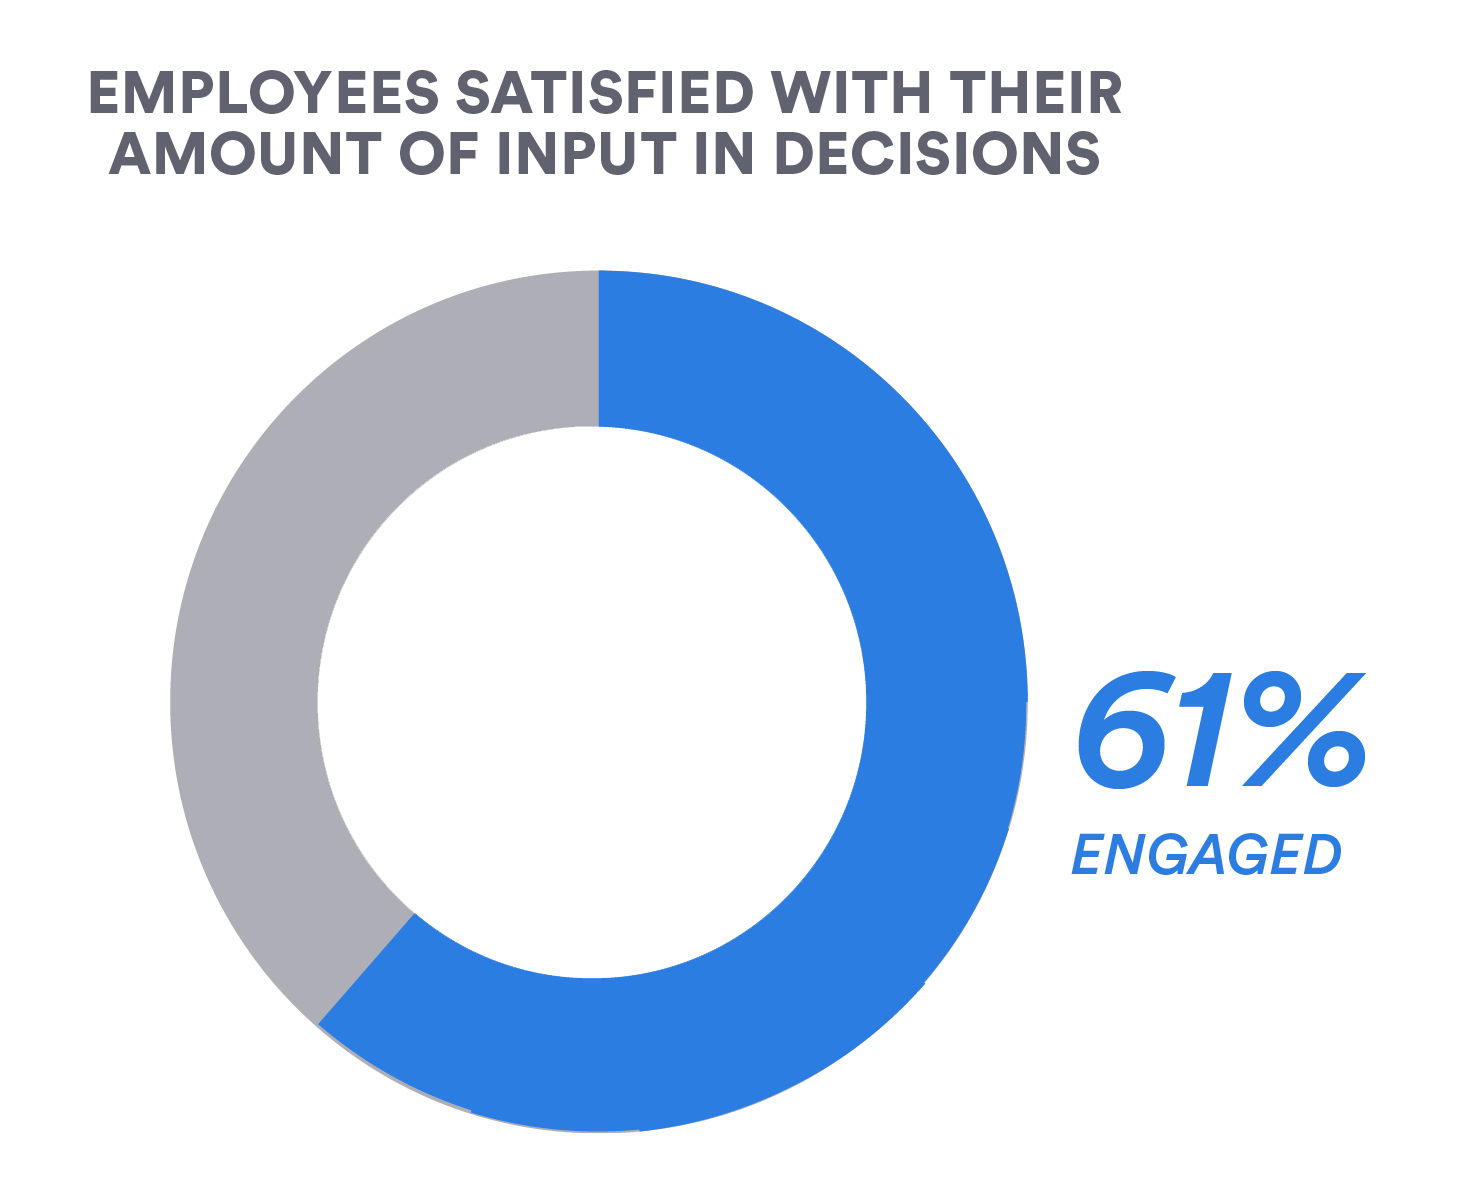 Employees satisfied with their amount of input in decisions